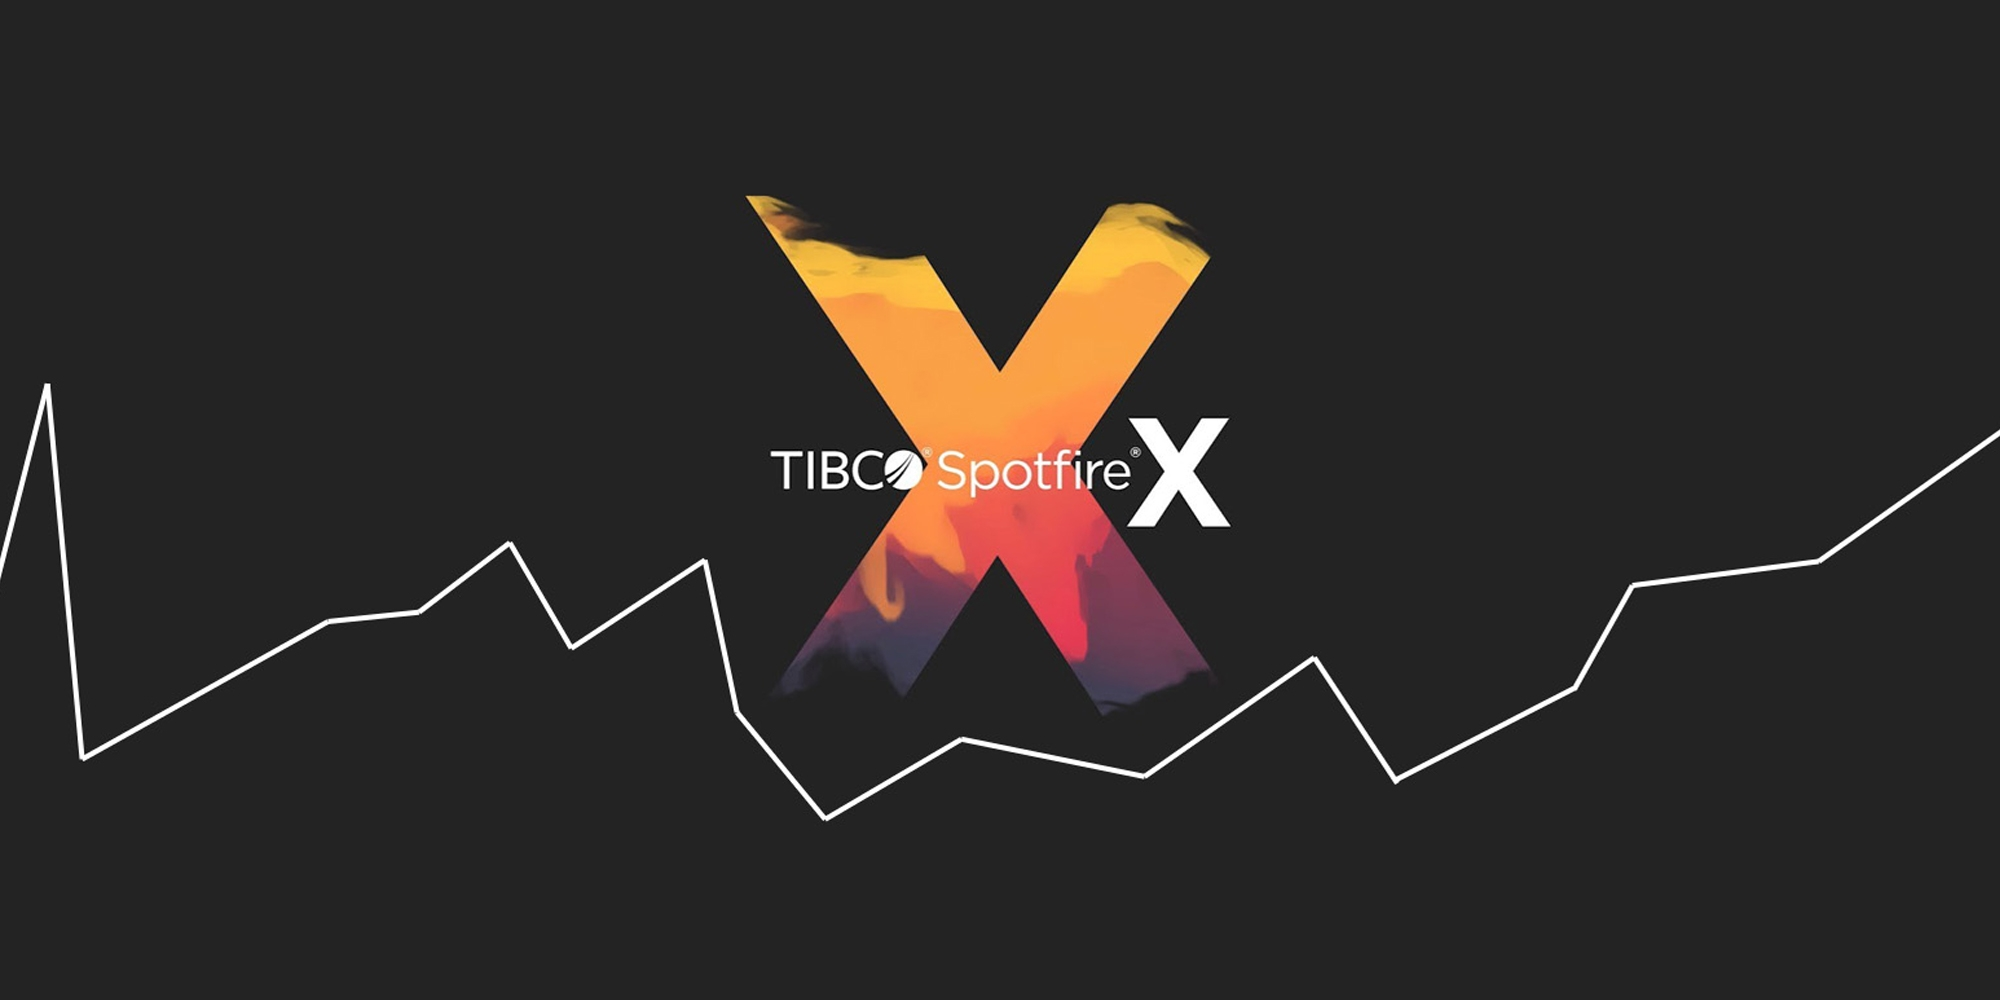 3 best things about TIBCO Spotfire X